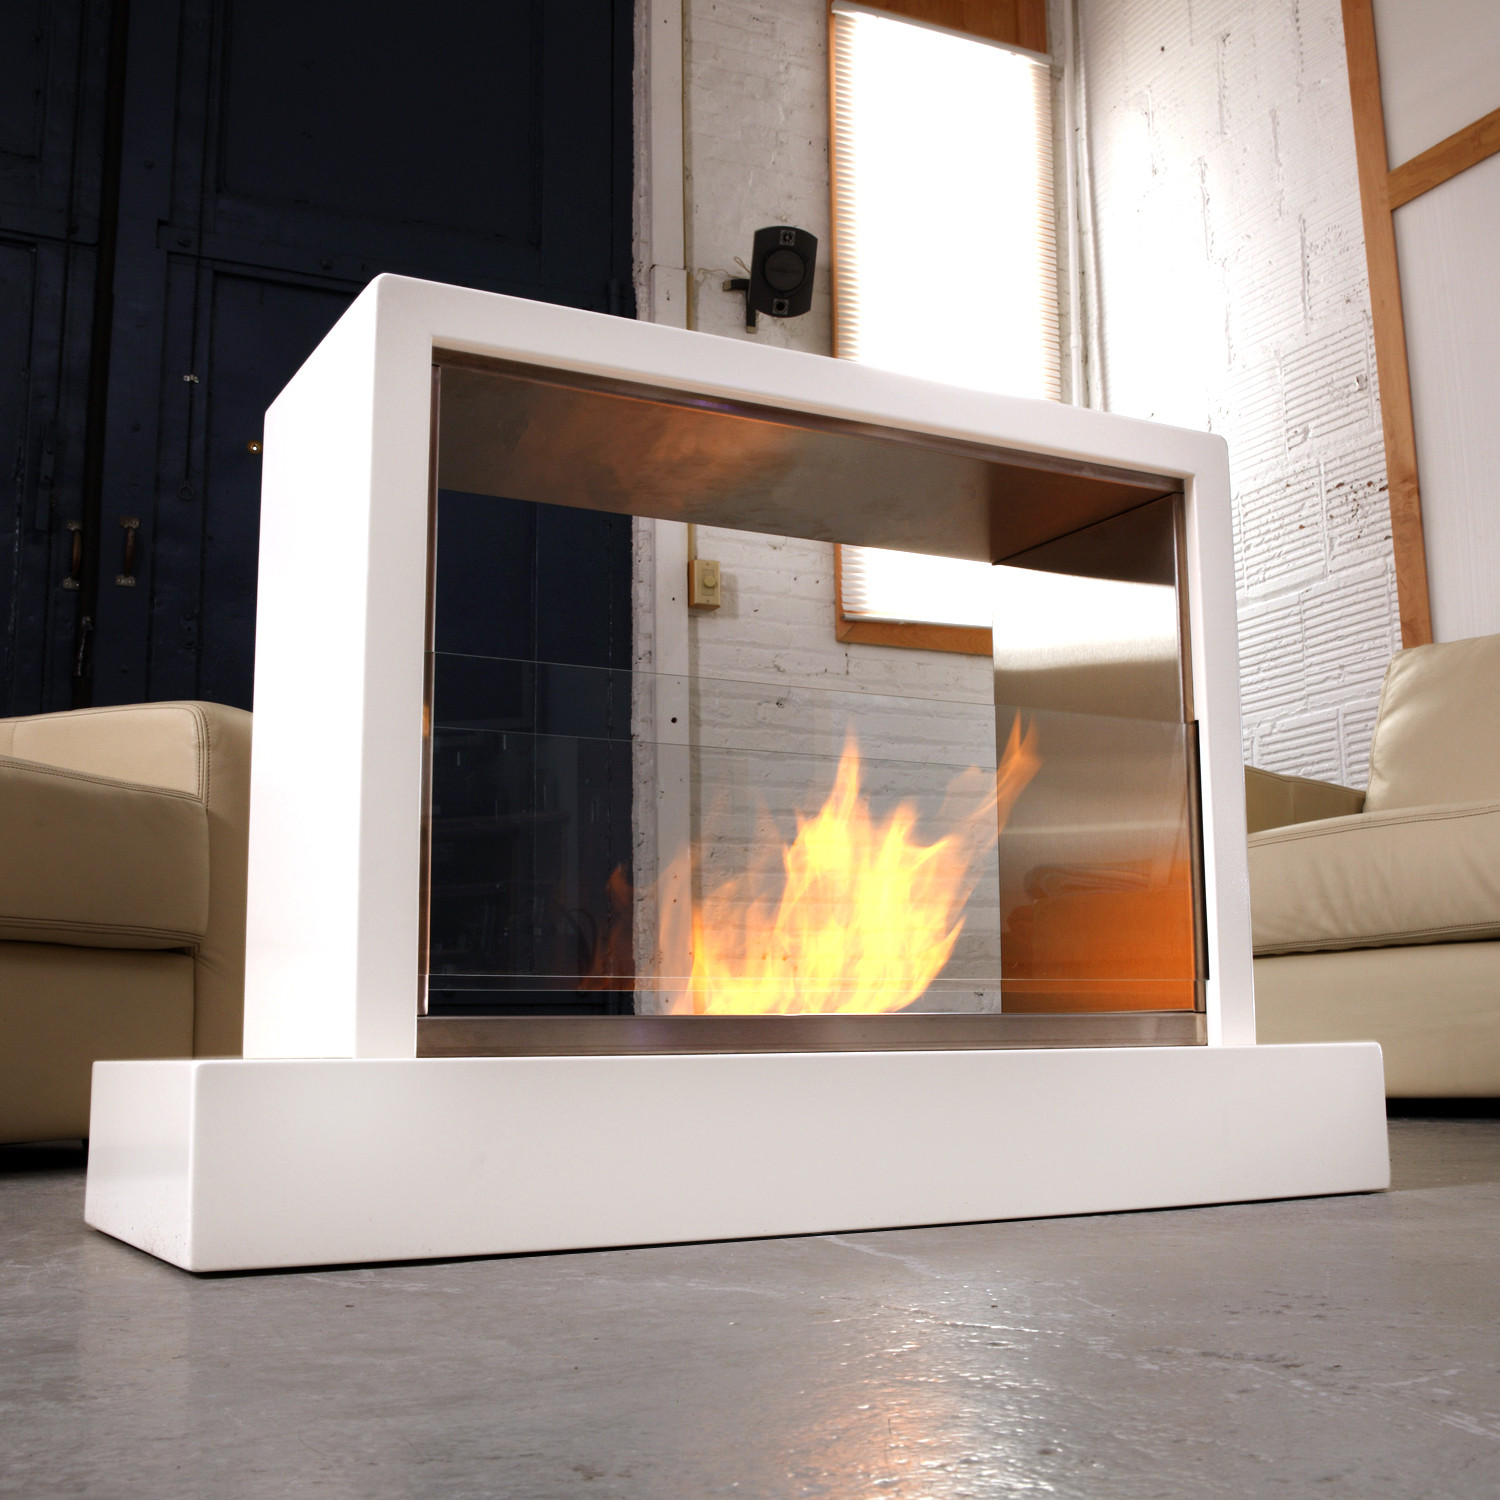 Image Gallery Indoor Fireplace